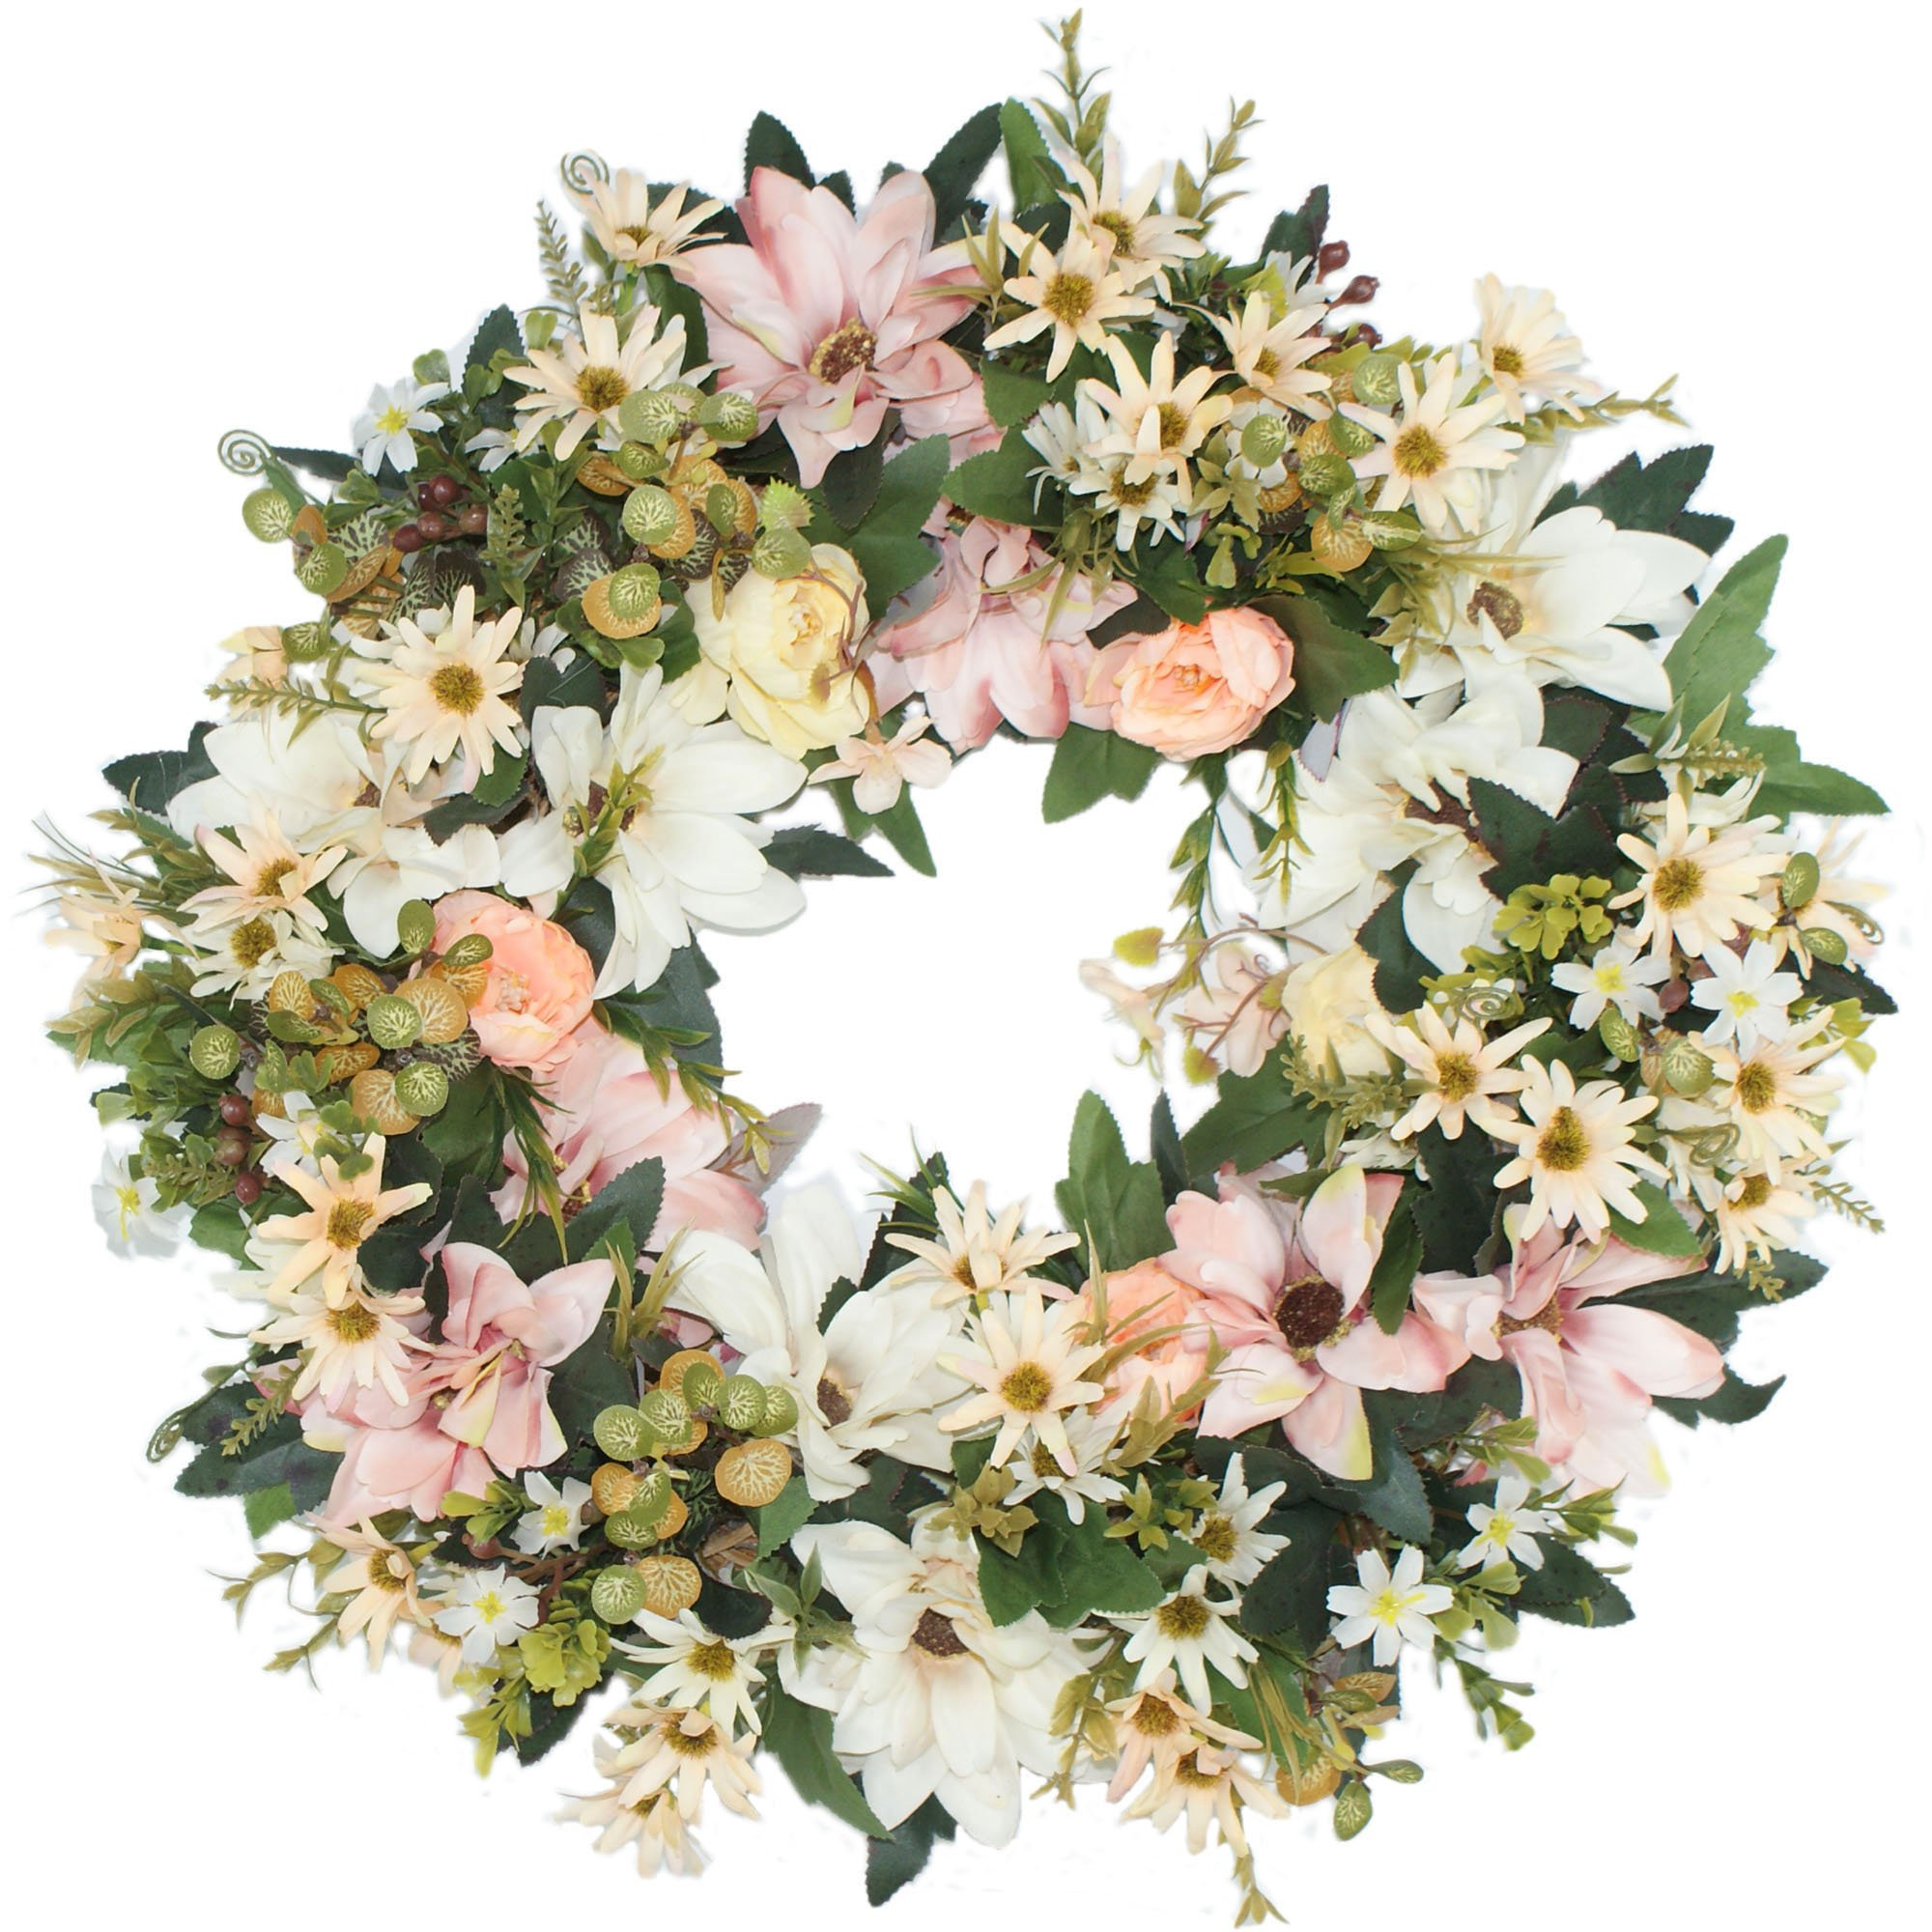 Emlyn Silk Summer Door Wreath 17-Inch Beautiful Silk Front Door Wreath For Spring And Summer Wreath Display, Handcrafted By,Everyday Wreath